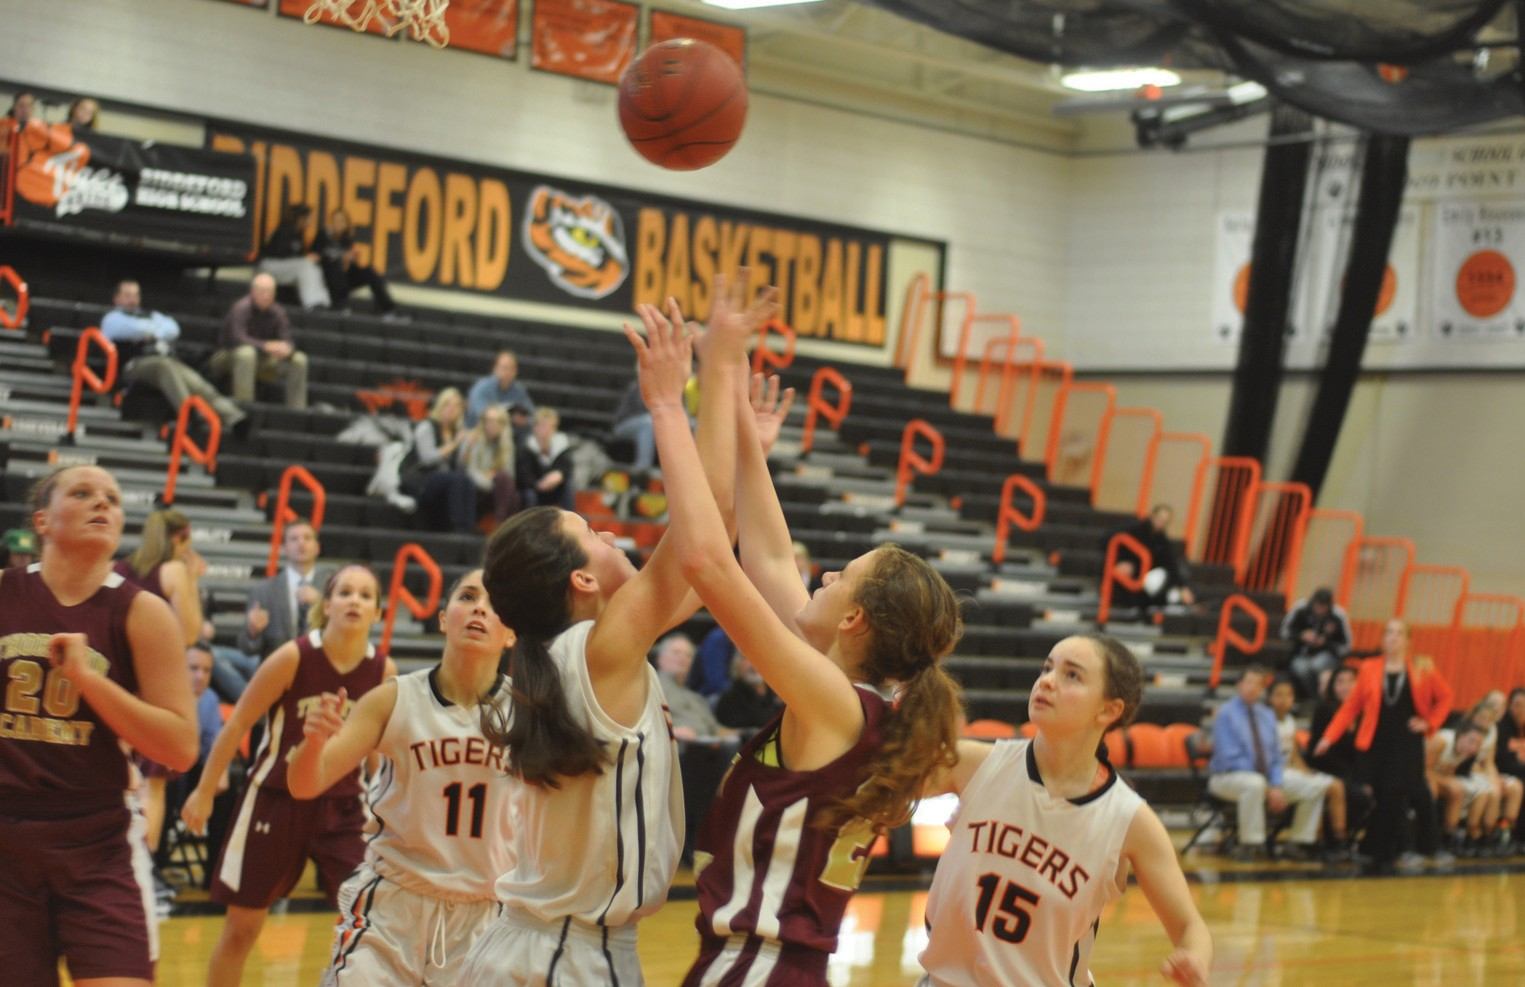 Biddeford's Taylor Wildes (left) and Thornton Academy's Lucy Macomber (right) fight for a rebound in the fourth quarter on Monday night in Biddeford.